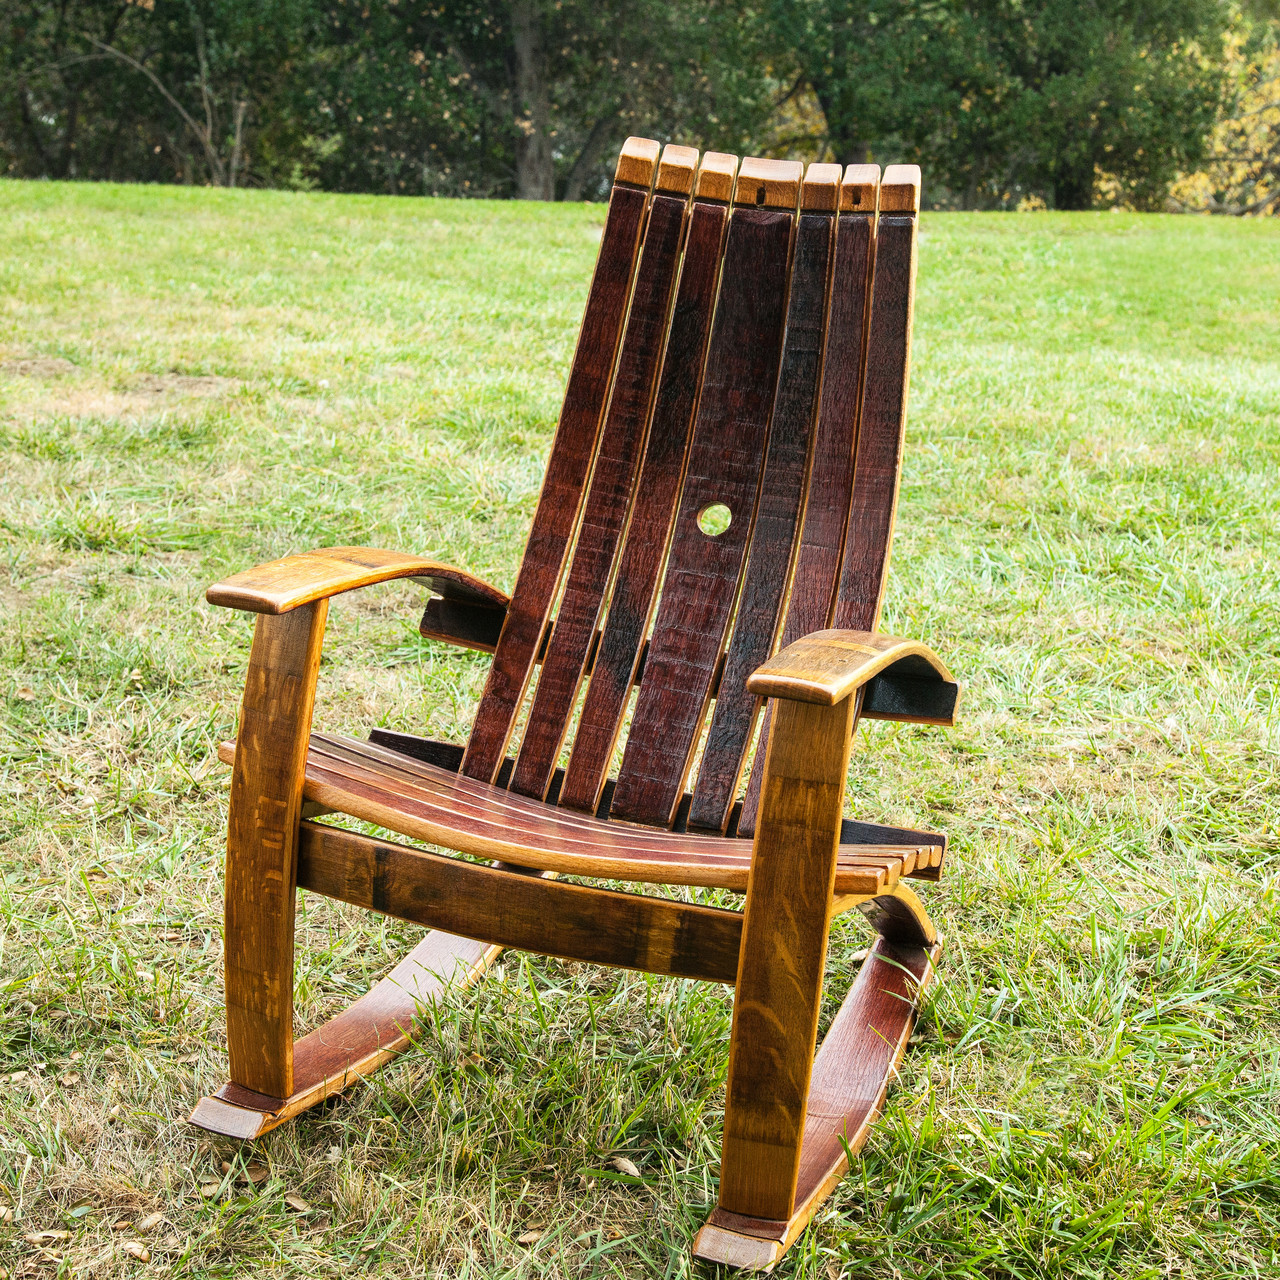 Rocking Chair With High Quality Cover Made Especially For The Chairs . Full resolution  img, nominally Width 1280 Height 1280 pixels, img with #6A3E1F.